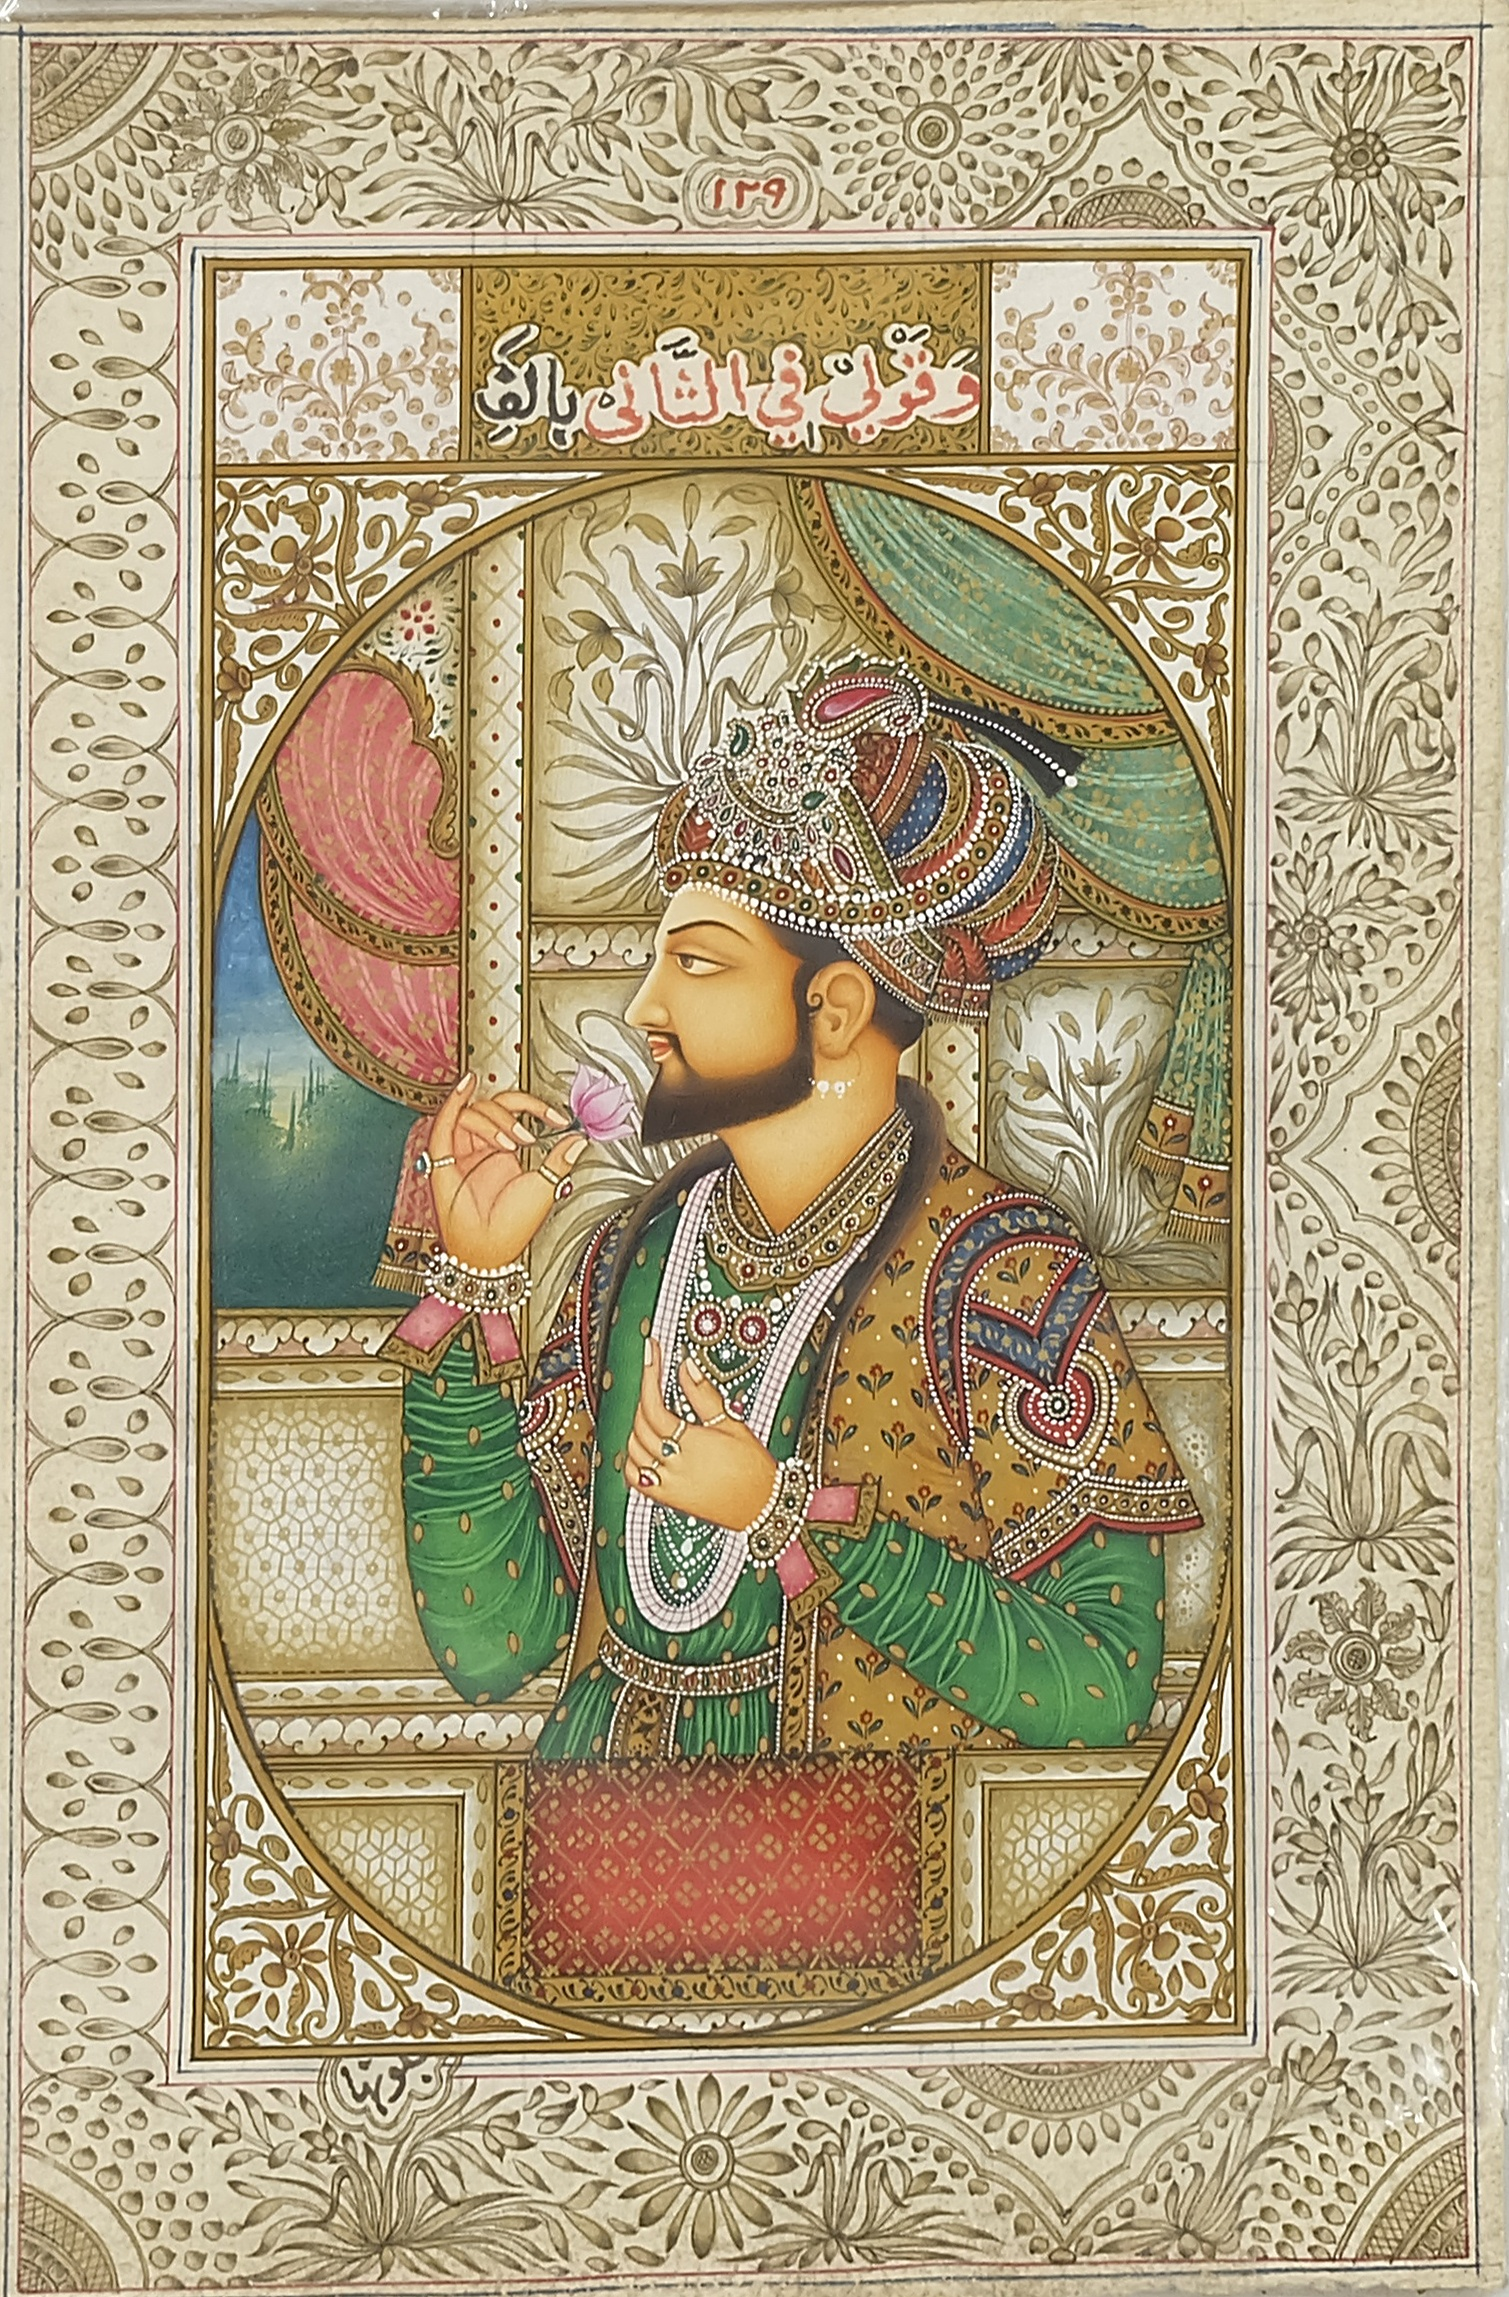 'Indian Miniature Paintings, Portraits of Shah Jahan and Mumtaz Mahal, Gouache and Ink on Paper, Calligraphy Verso'